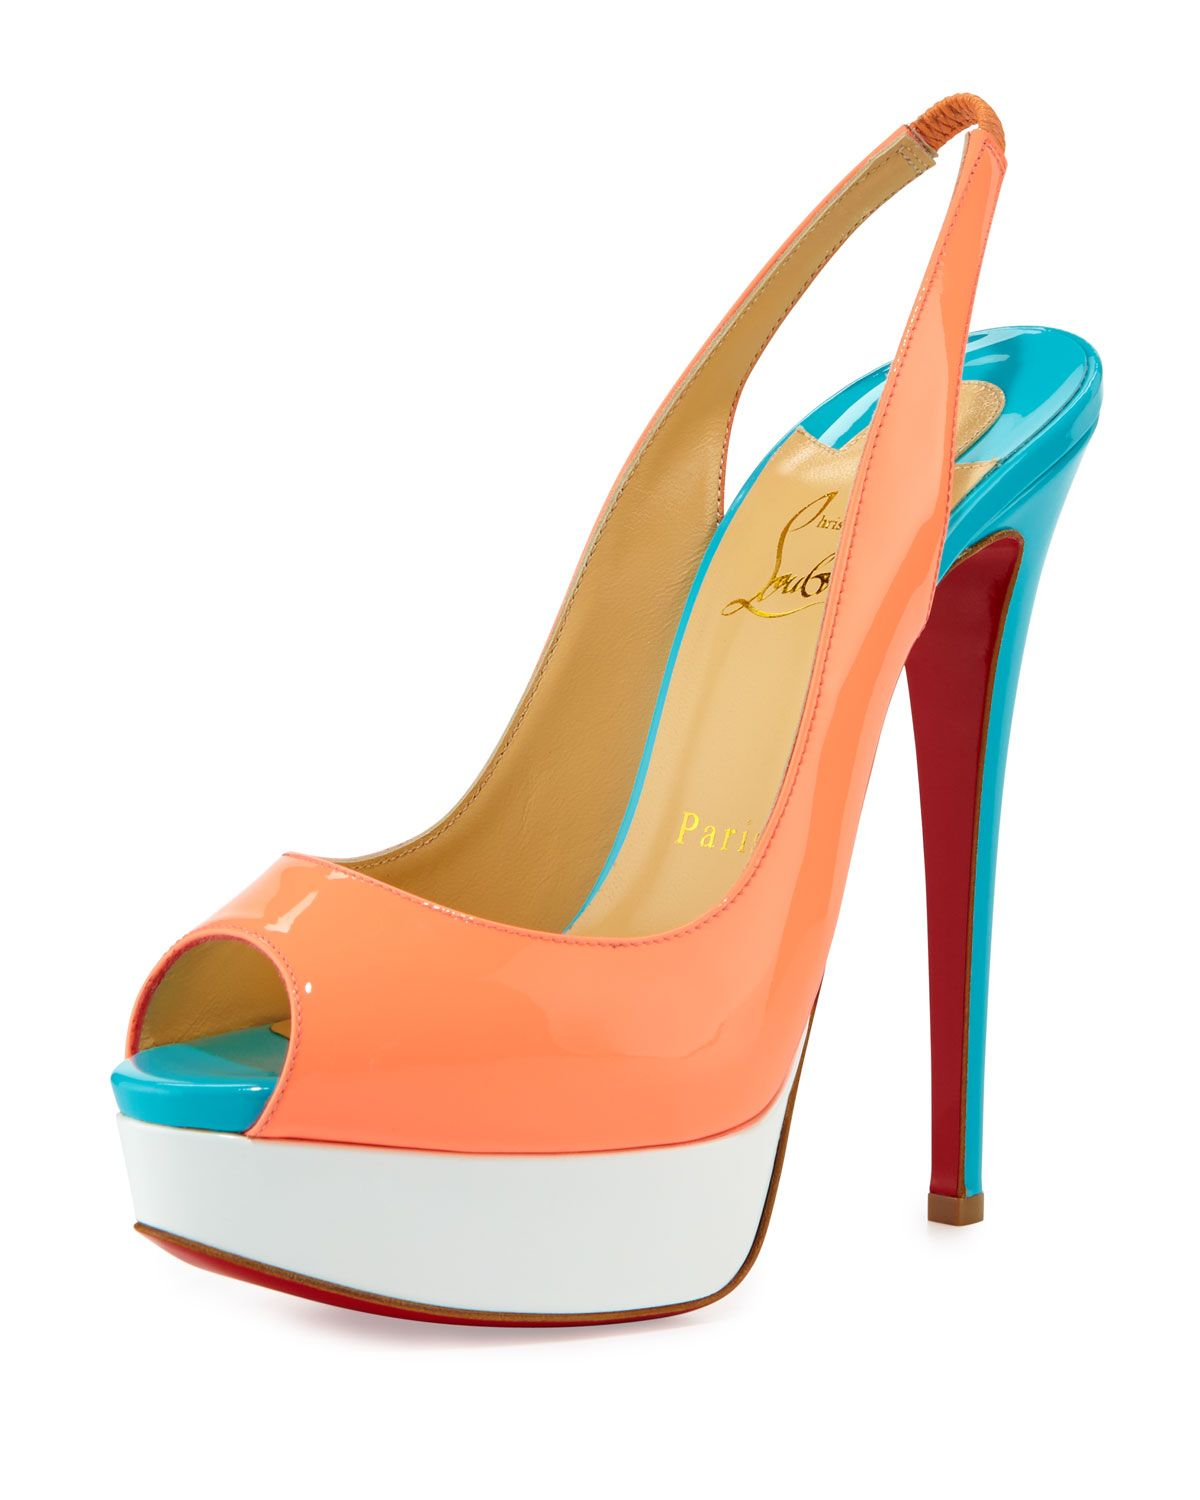 Christian Louboutin Lady Peep-Toe Slingback Red Sole Pump 615ca1be4